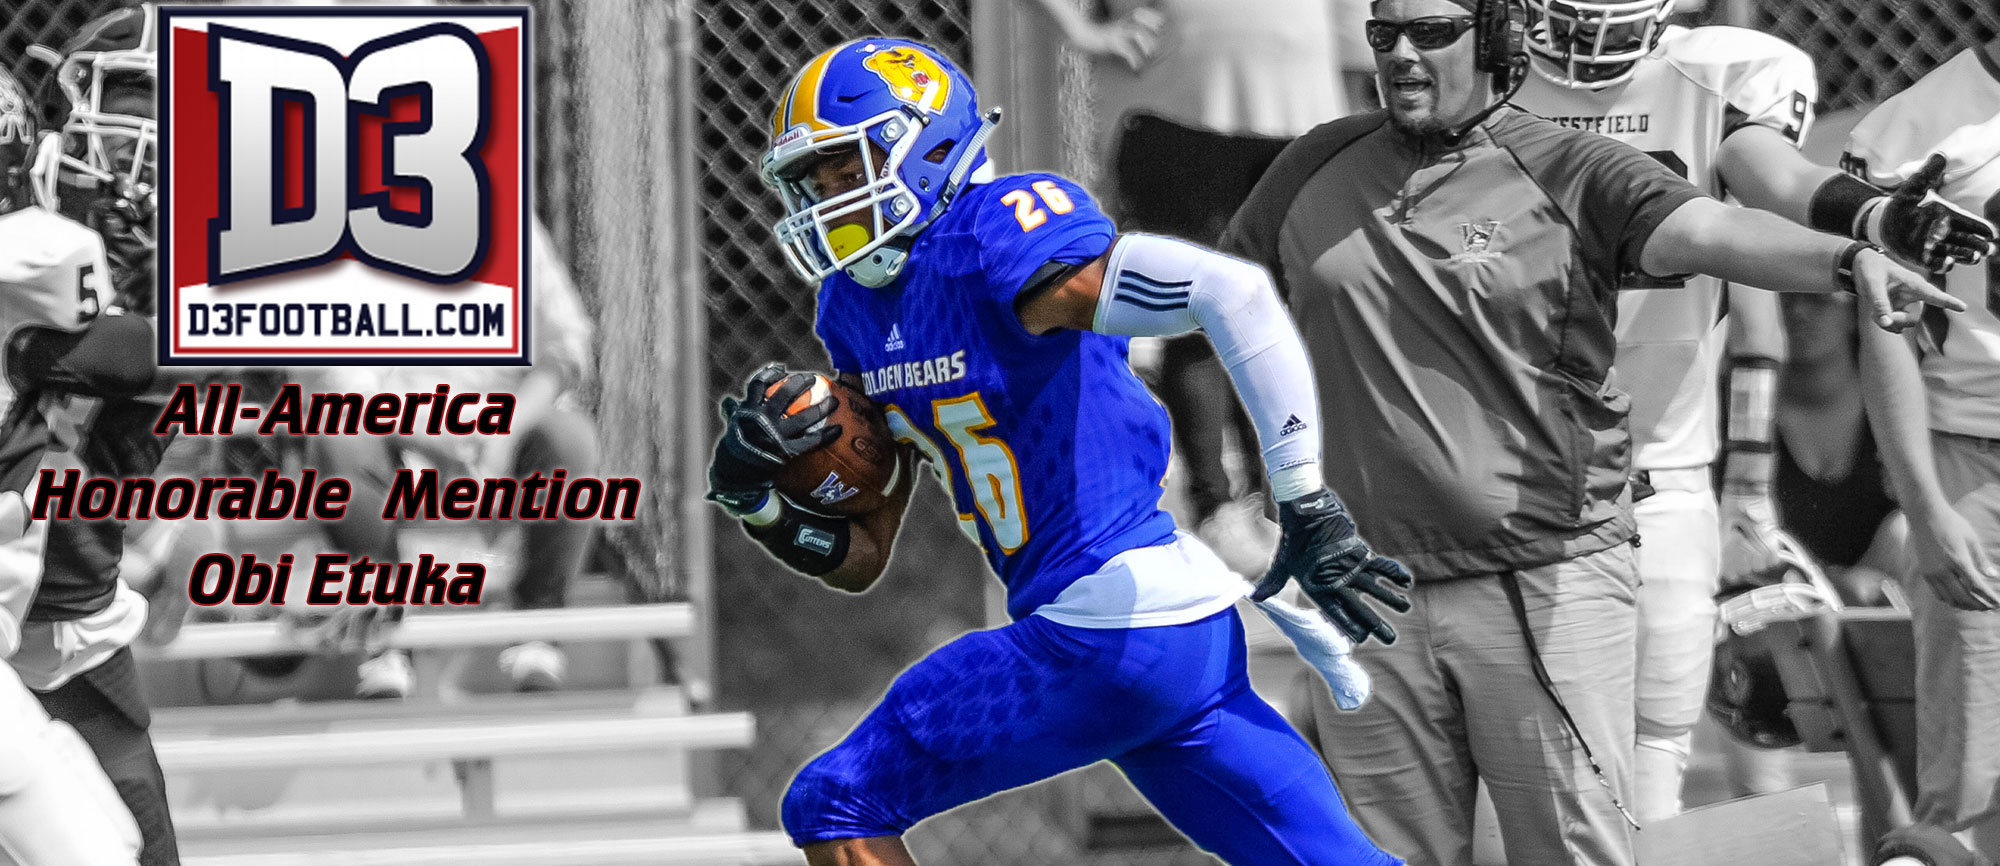 Obi Etuka Named Honorable Mention All-American by D3football.com